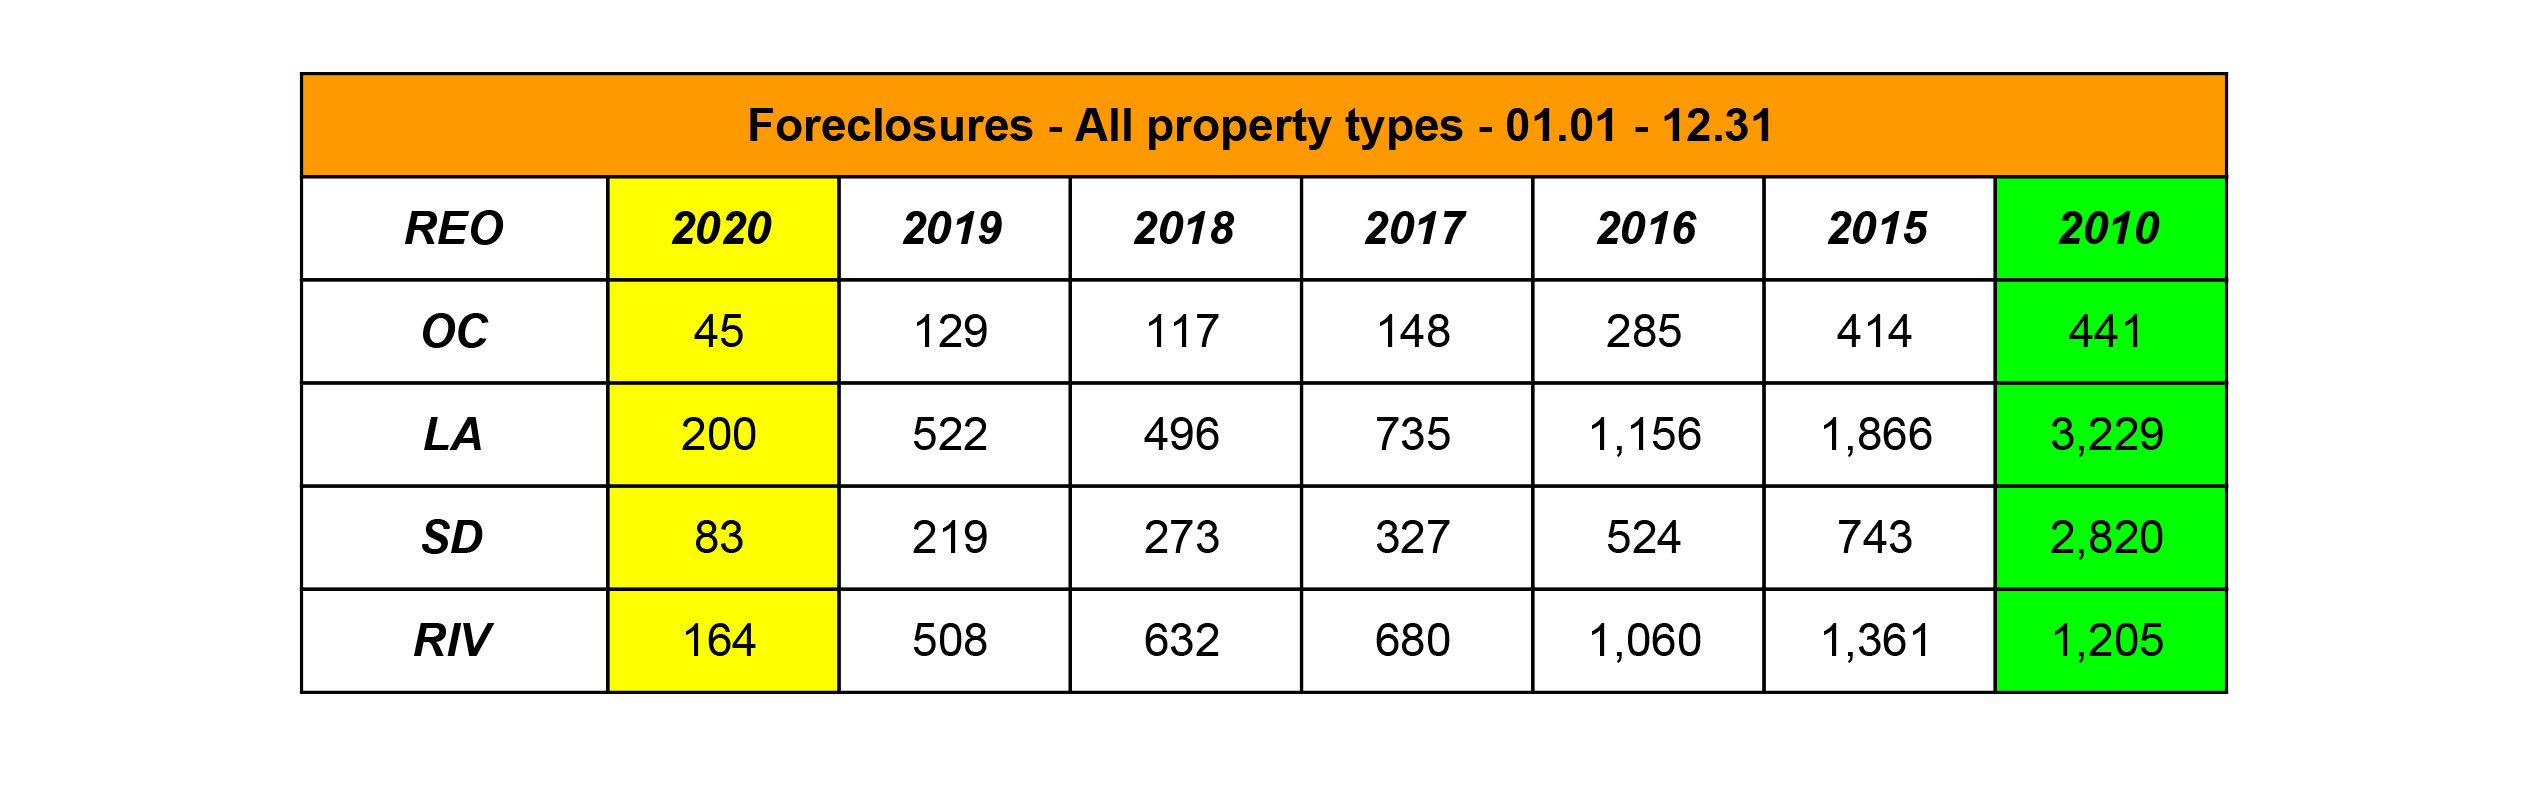 OC Market Update - Foreclosures - January 2021